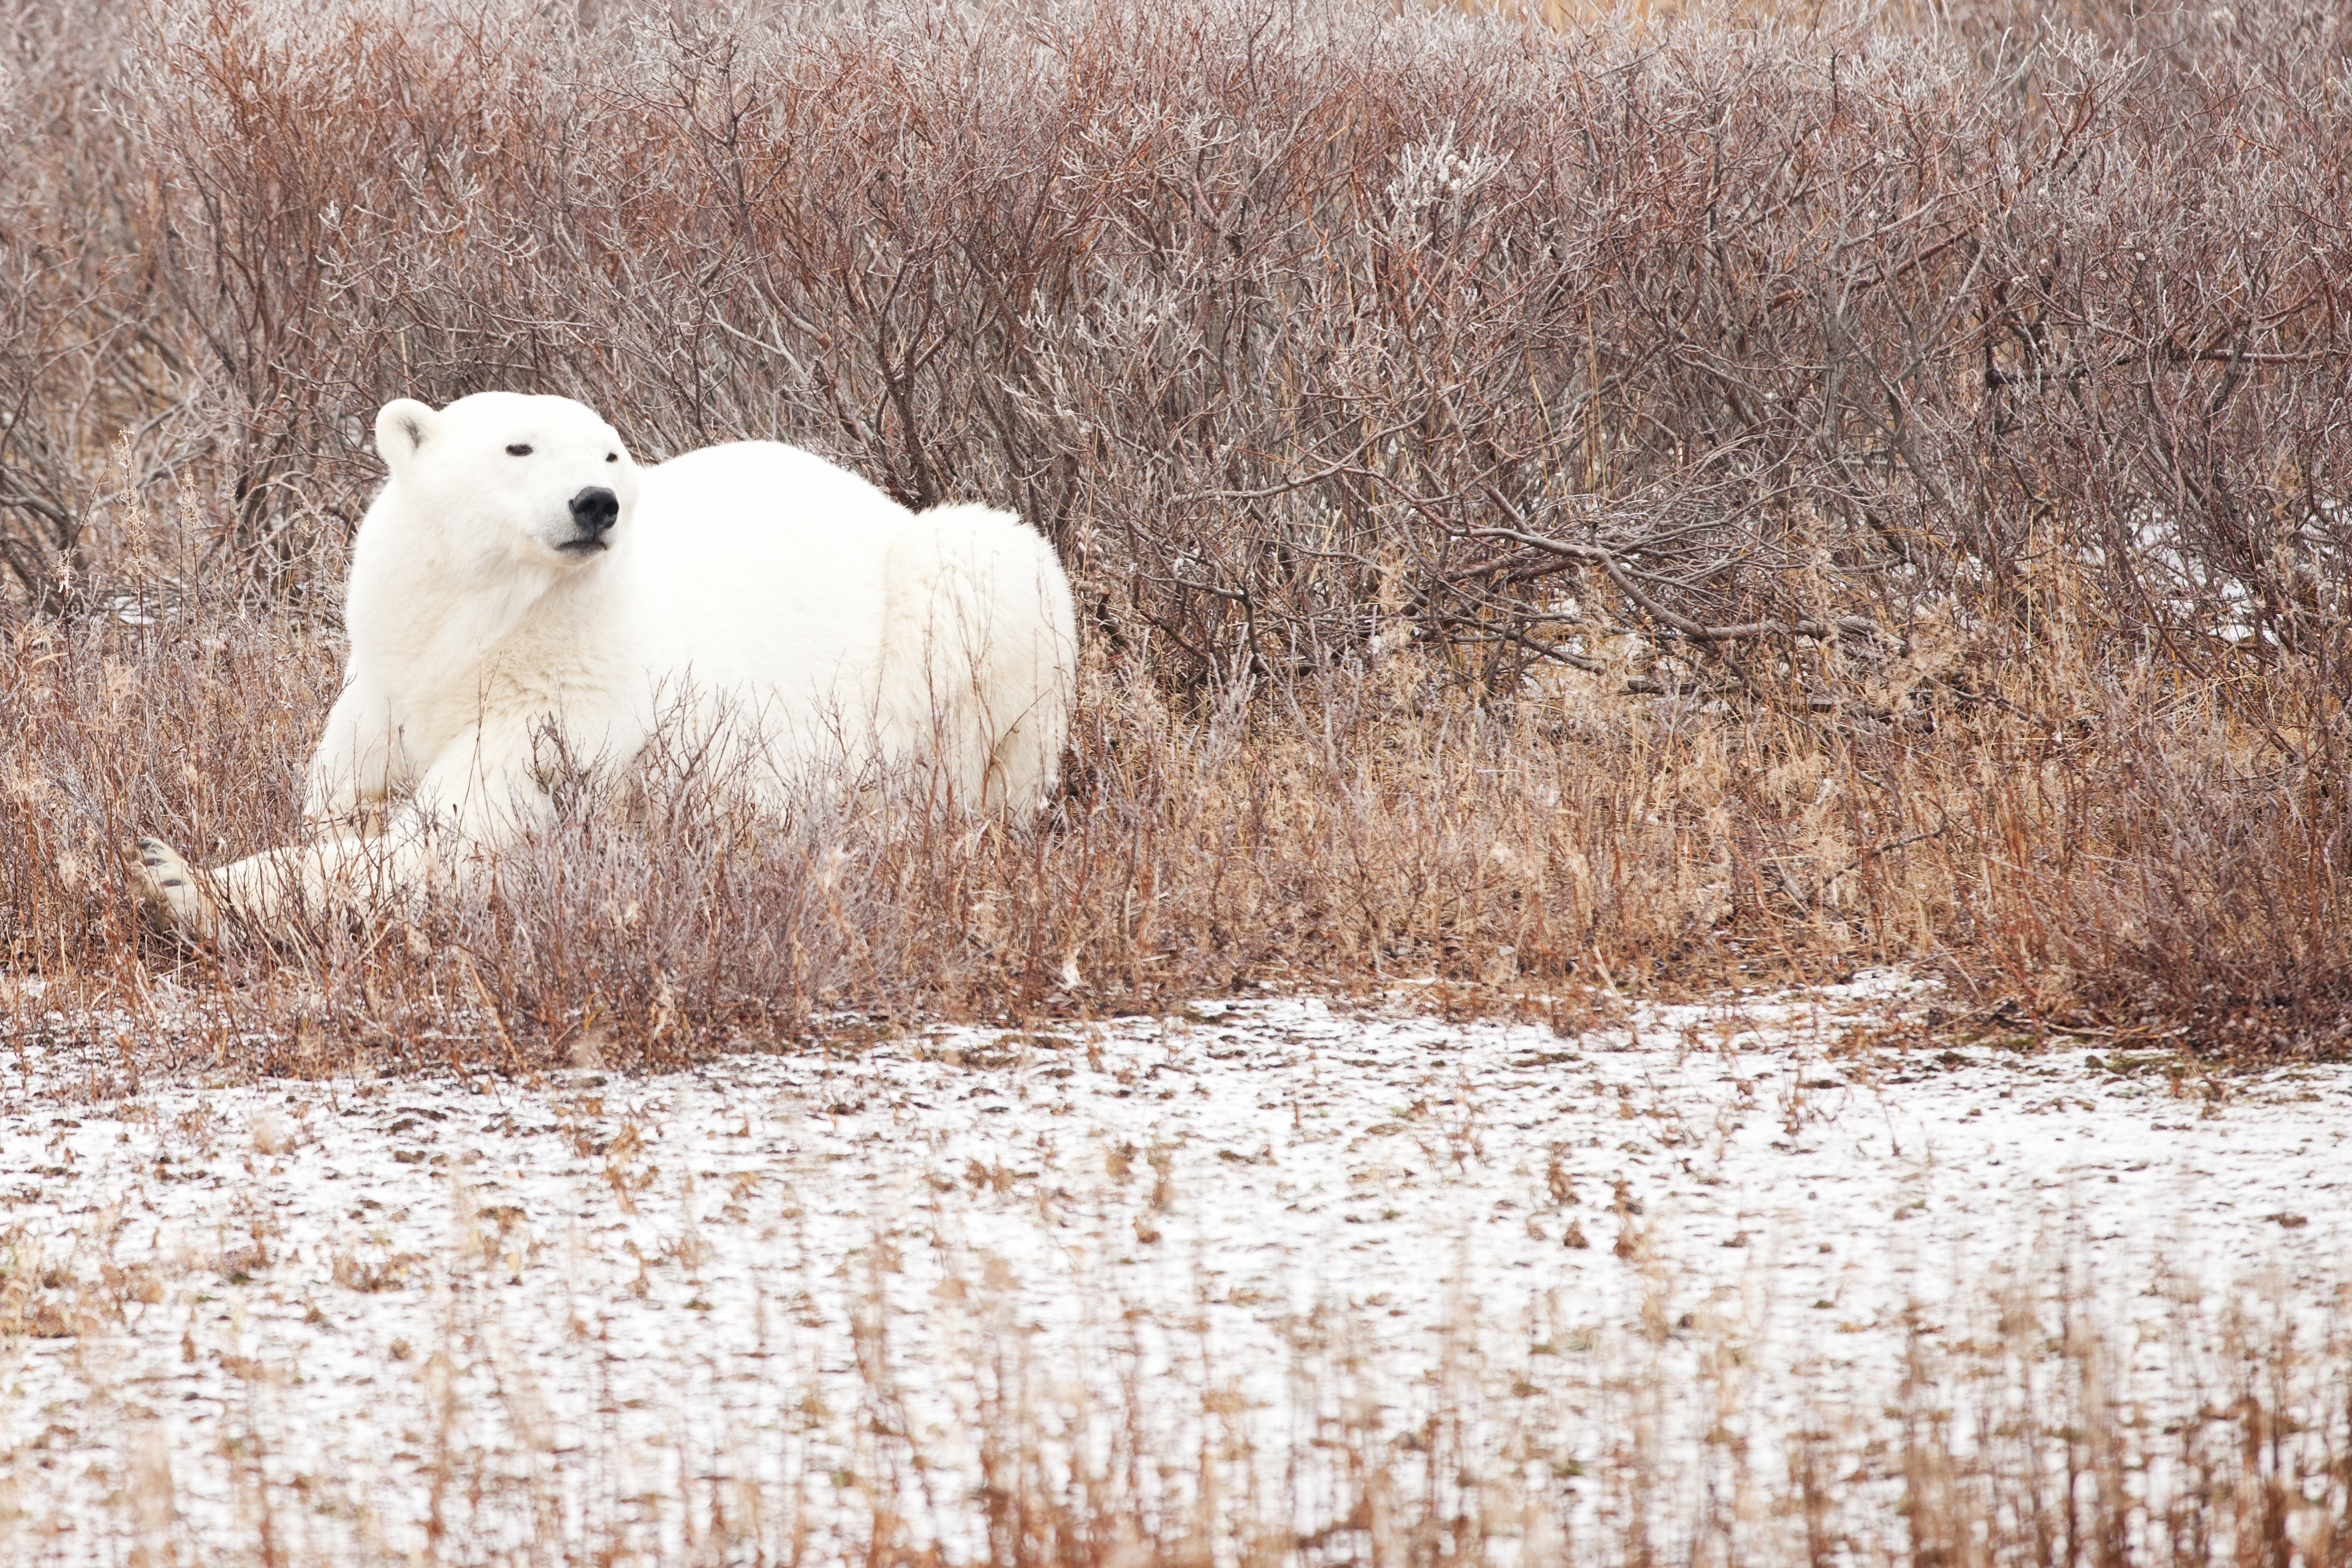 an adult polar bear rests in the grasses with a dusting of snow